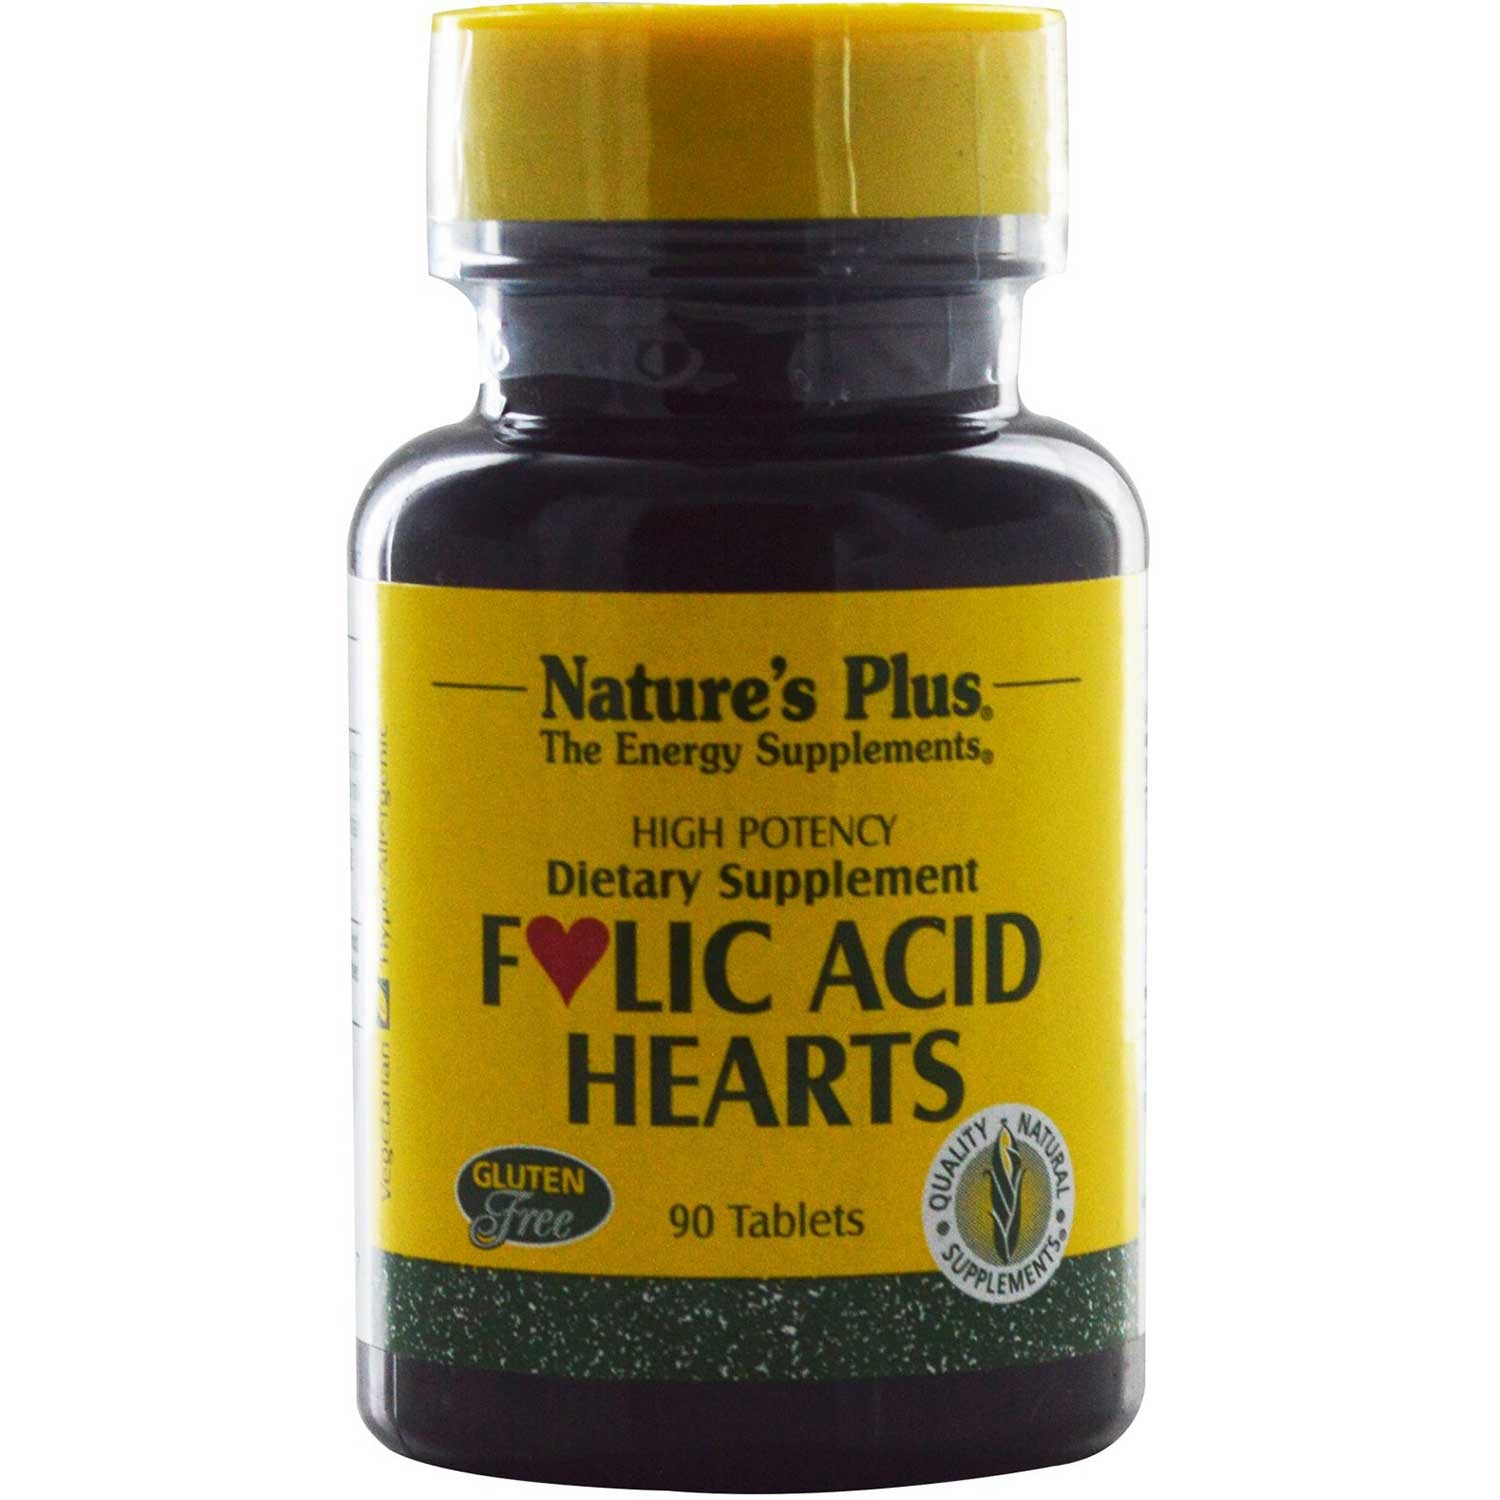 Natures Plus Folic Acid Hearts, 90 tabs-NaturesWisdom